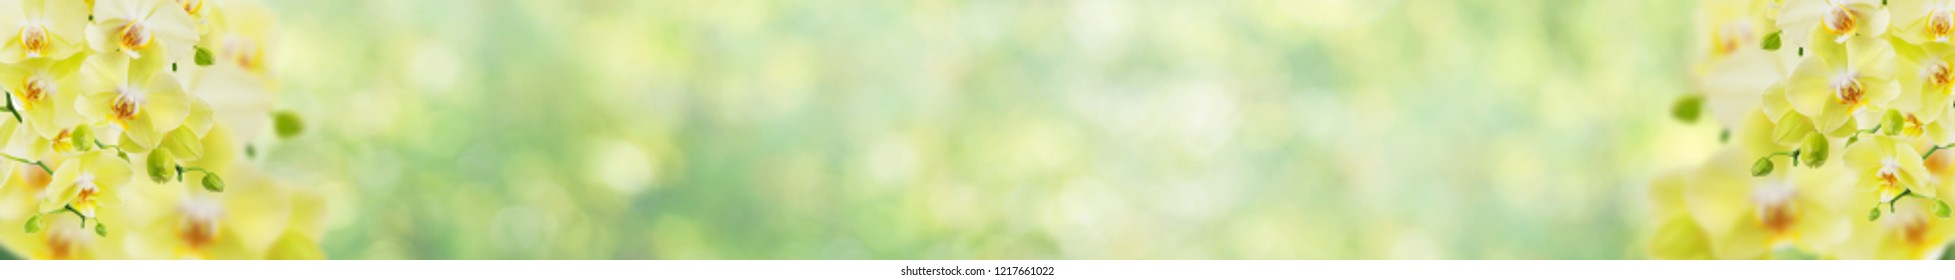 Long banner with yellow orchid flowers on blurred abstract natural yellow-green background with beautiful bokeh